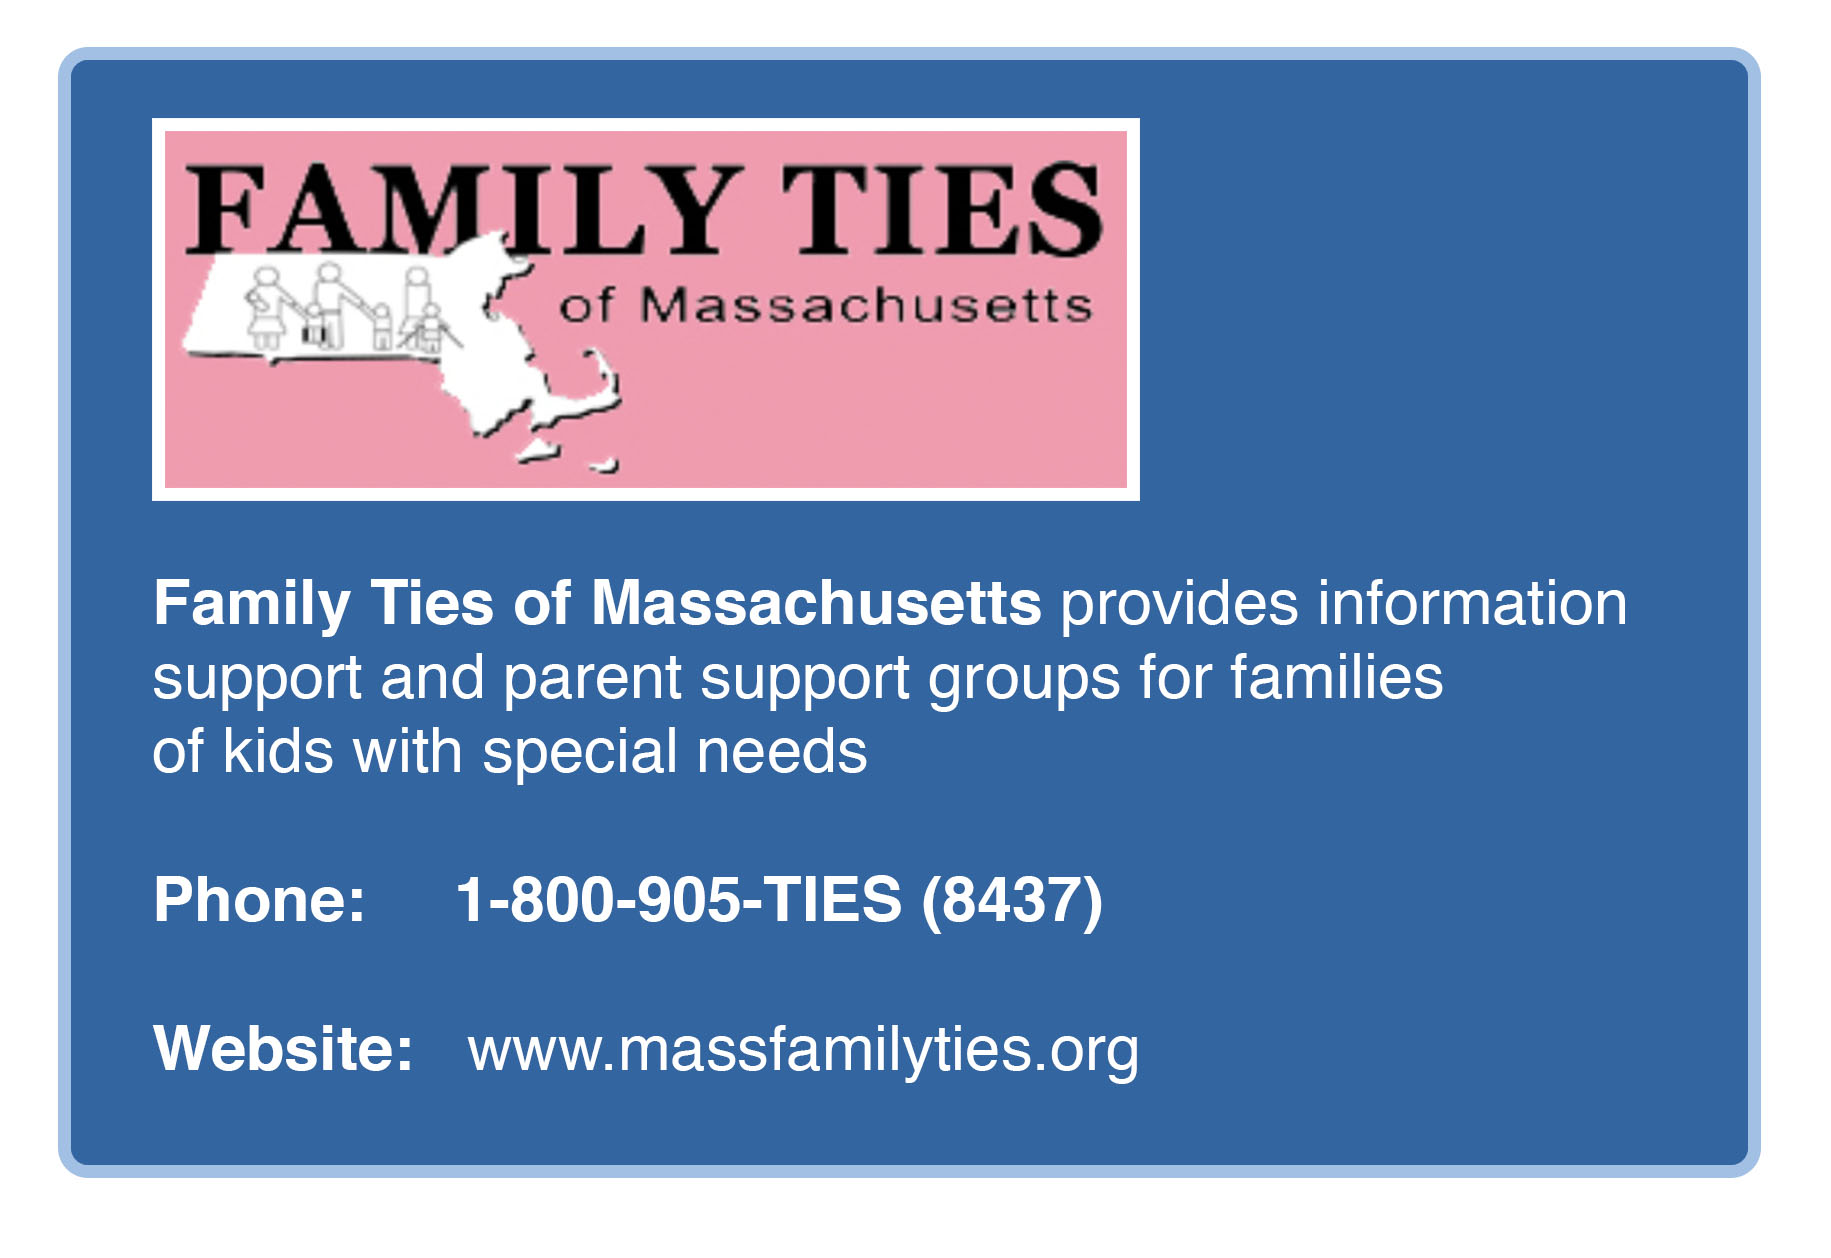 Image of Massachusetts Family Ties Logo above the text 'Family Ties of Massachusetts provides information  support and parent support groups for families of kids with special needs. Phone: 1-800-905-TIES (8437) Website: www.massfamilyties.org'